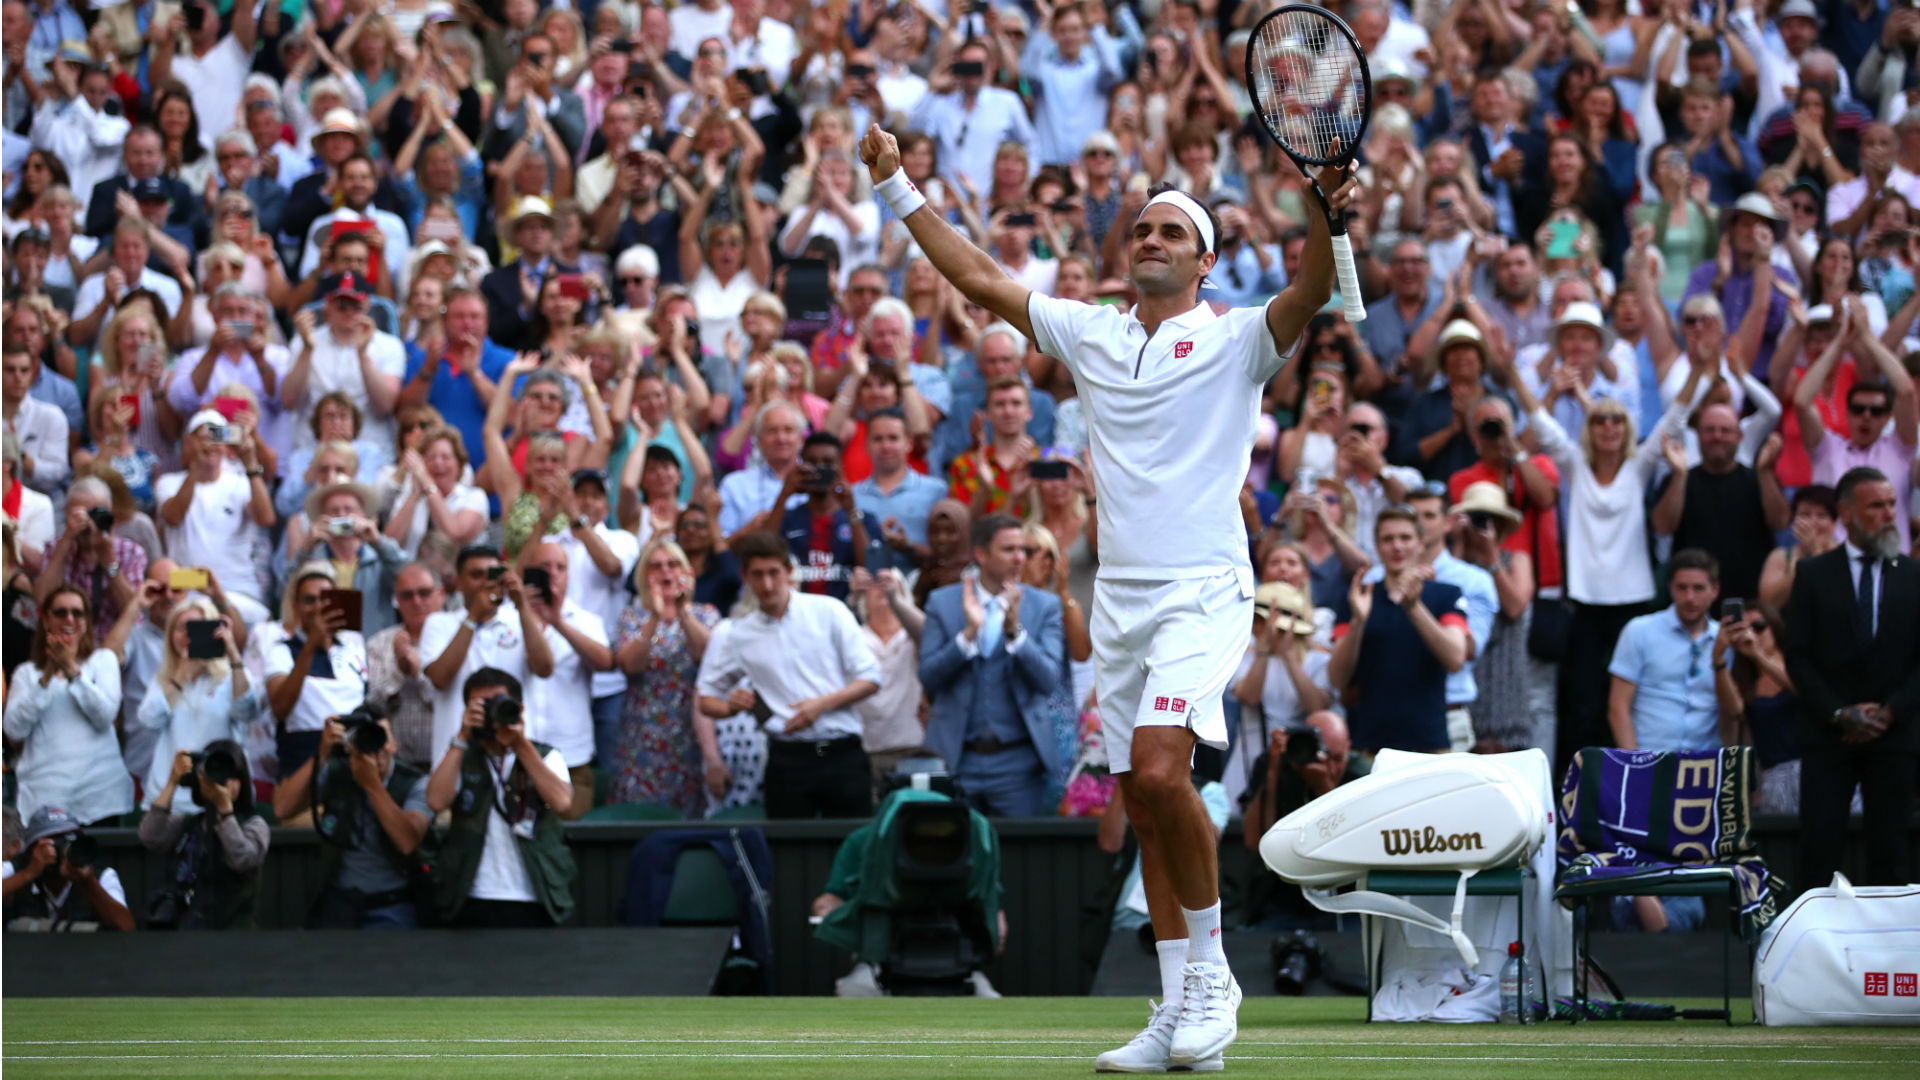 Eleven years after Rafael Nadal beat Roger Federer in an epic Wimbledon final, the Swiss beat his great rival in the last four.